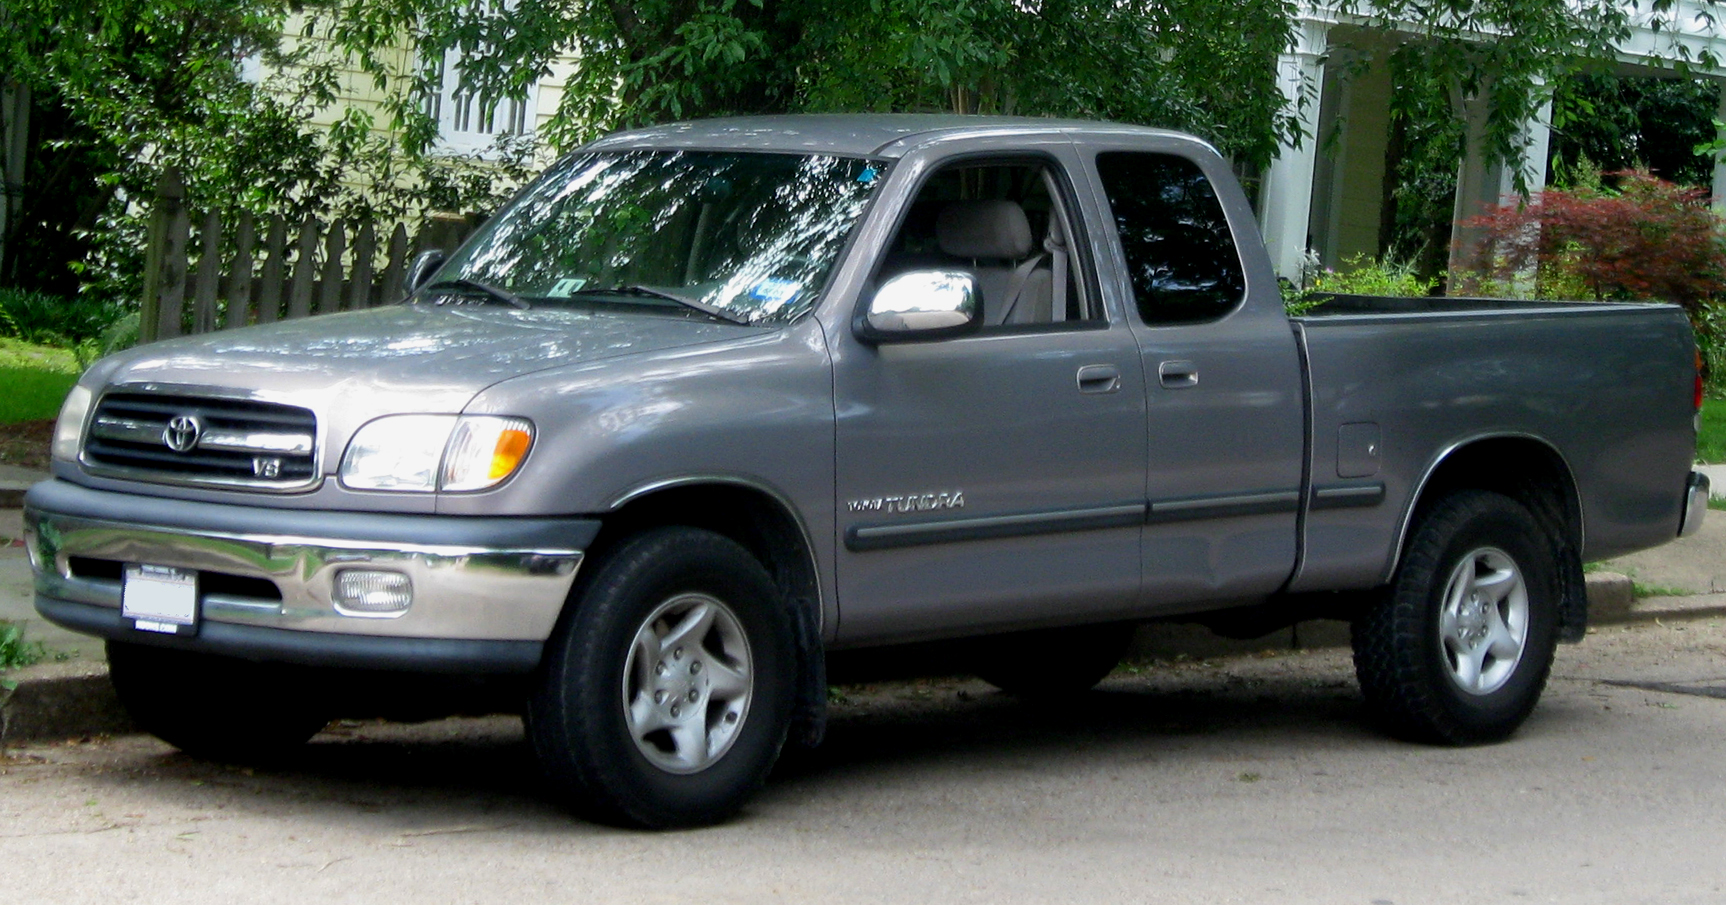 Description 2000-2002 Toyota Tundra -- 05-28-2011.jpg